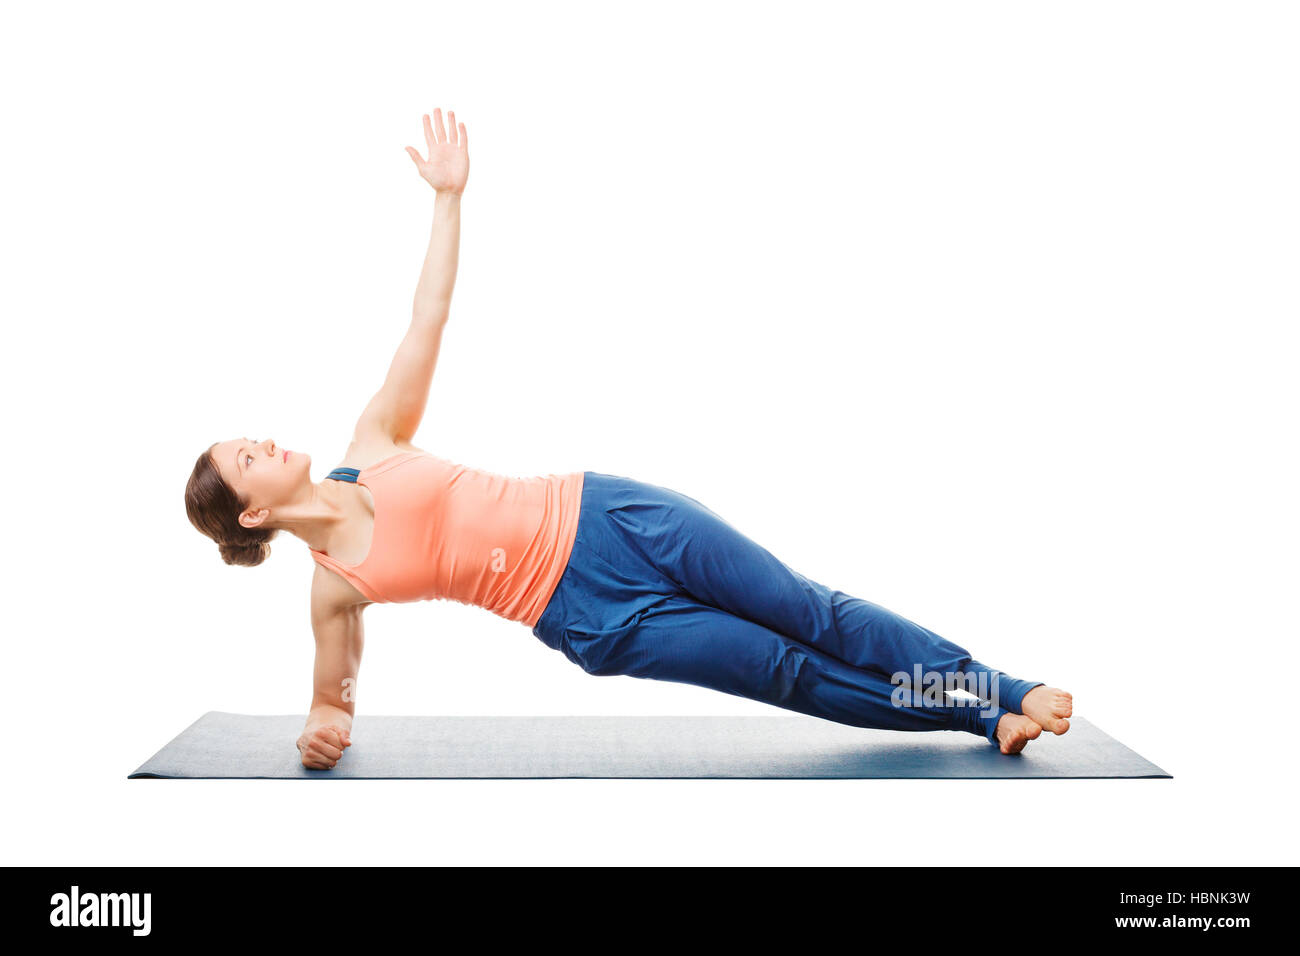 Woman doing yoga asana Vasisthasana - side plank pose - Stock Image